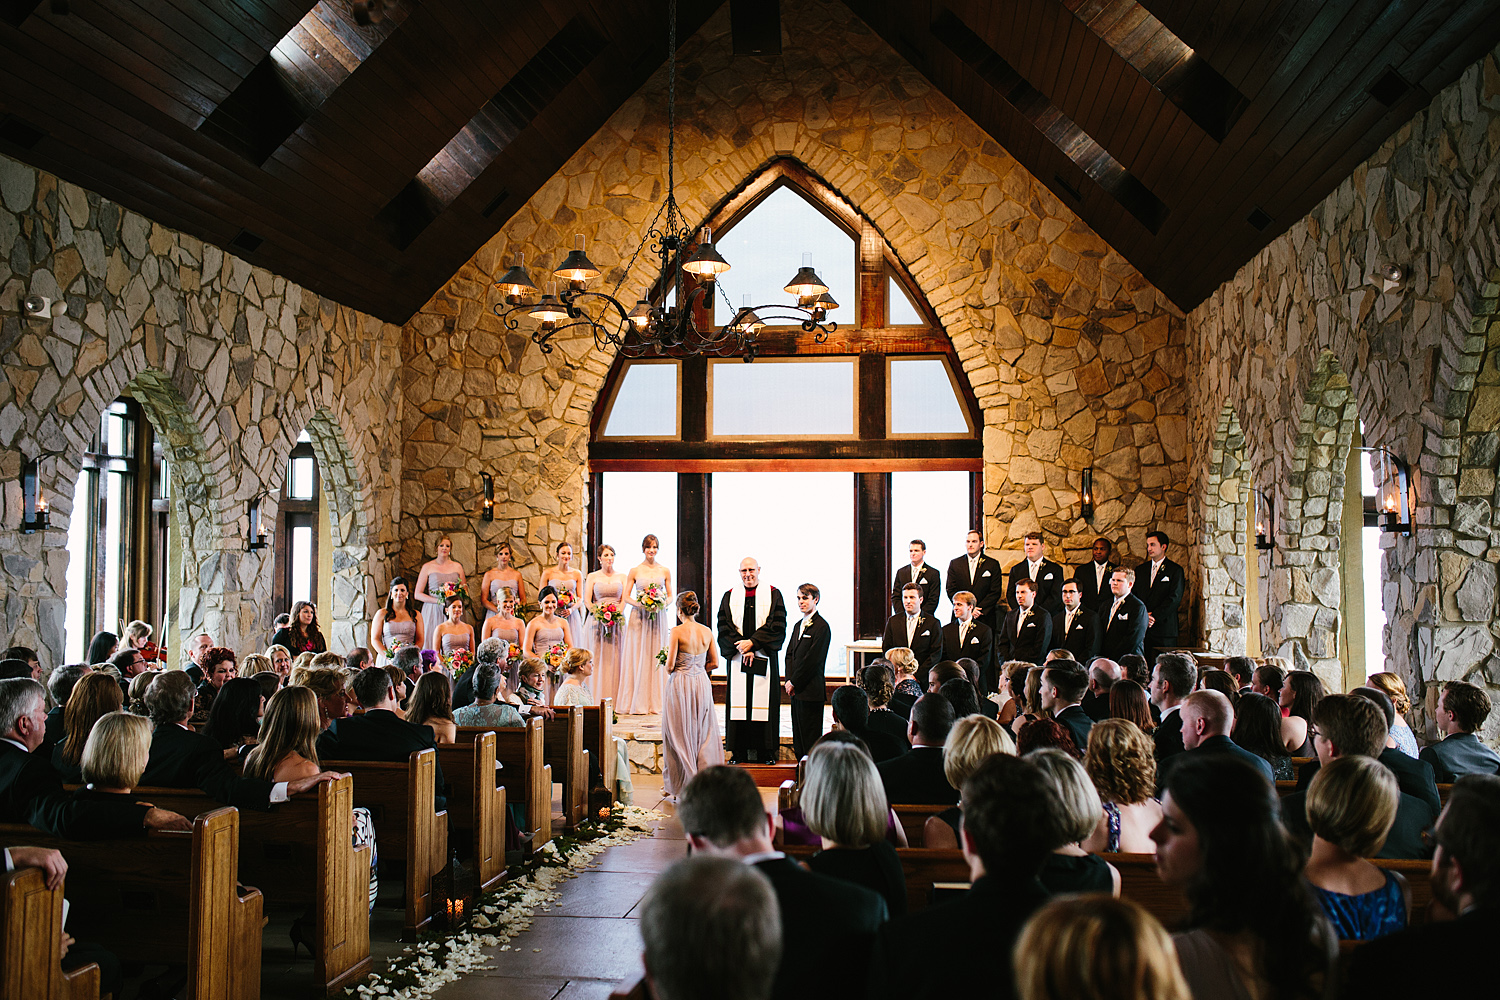 Jeremy-Russell-Cliffs-At-Glassy-Chapel-Wedding-15-22.jpg